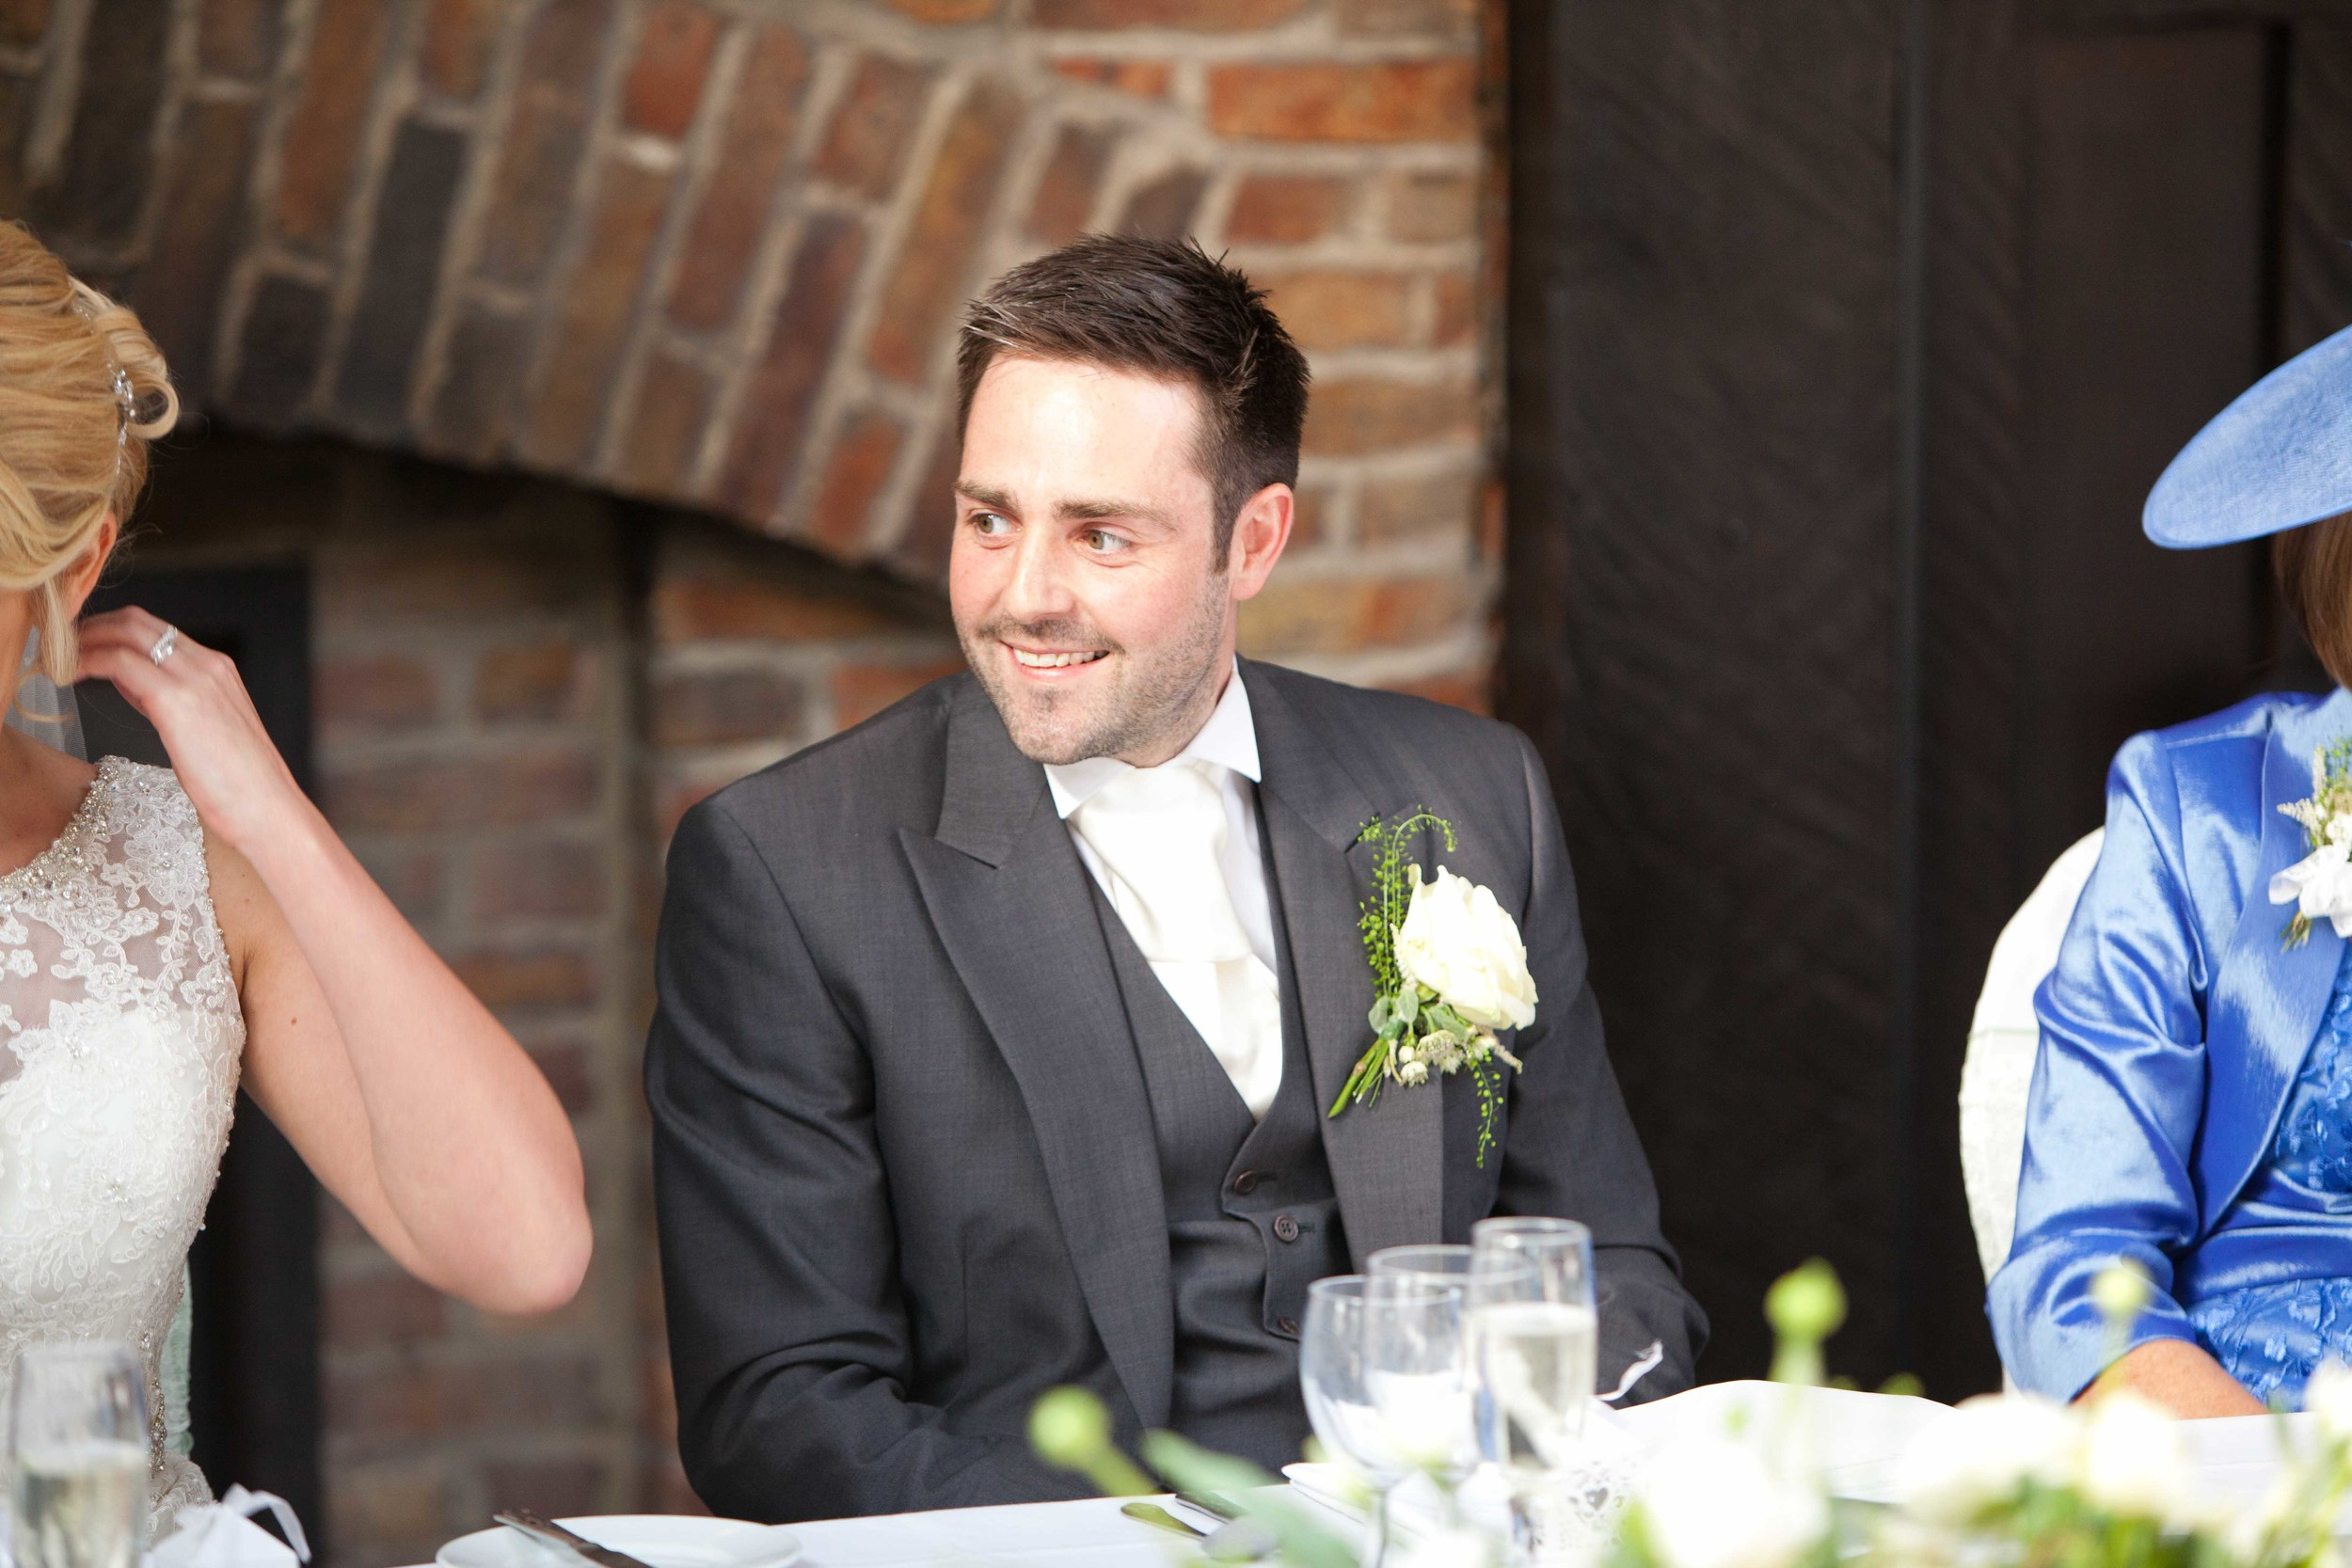 the morritt arms wedding